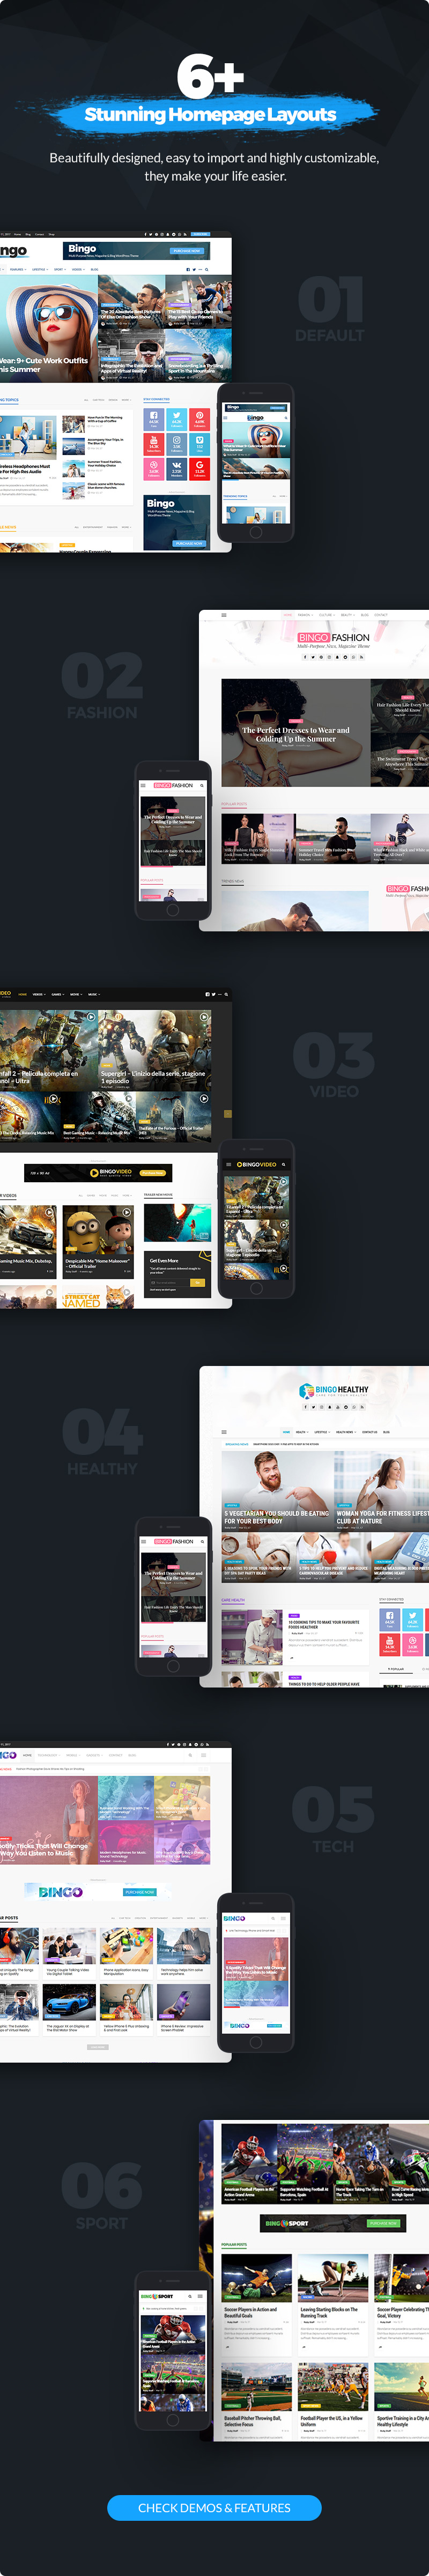 Bingo - Multi-Purpose Newspaper & Magazine Theme - 2